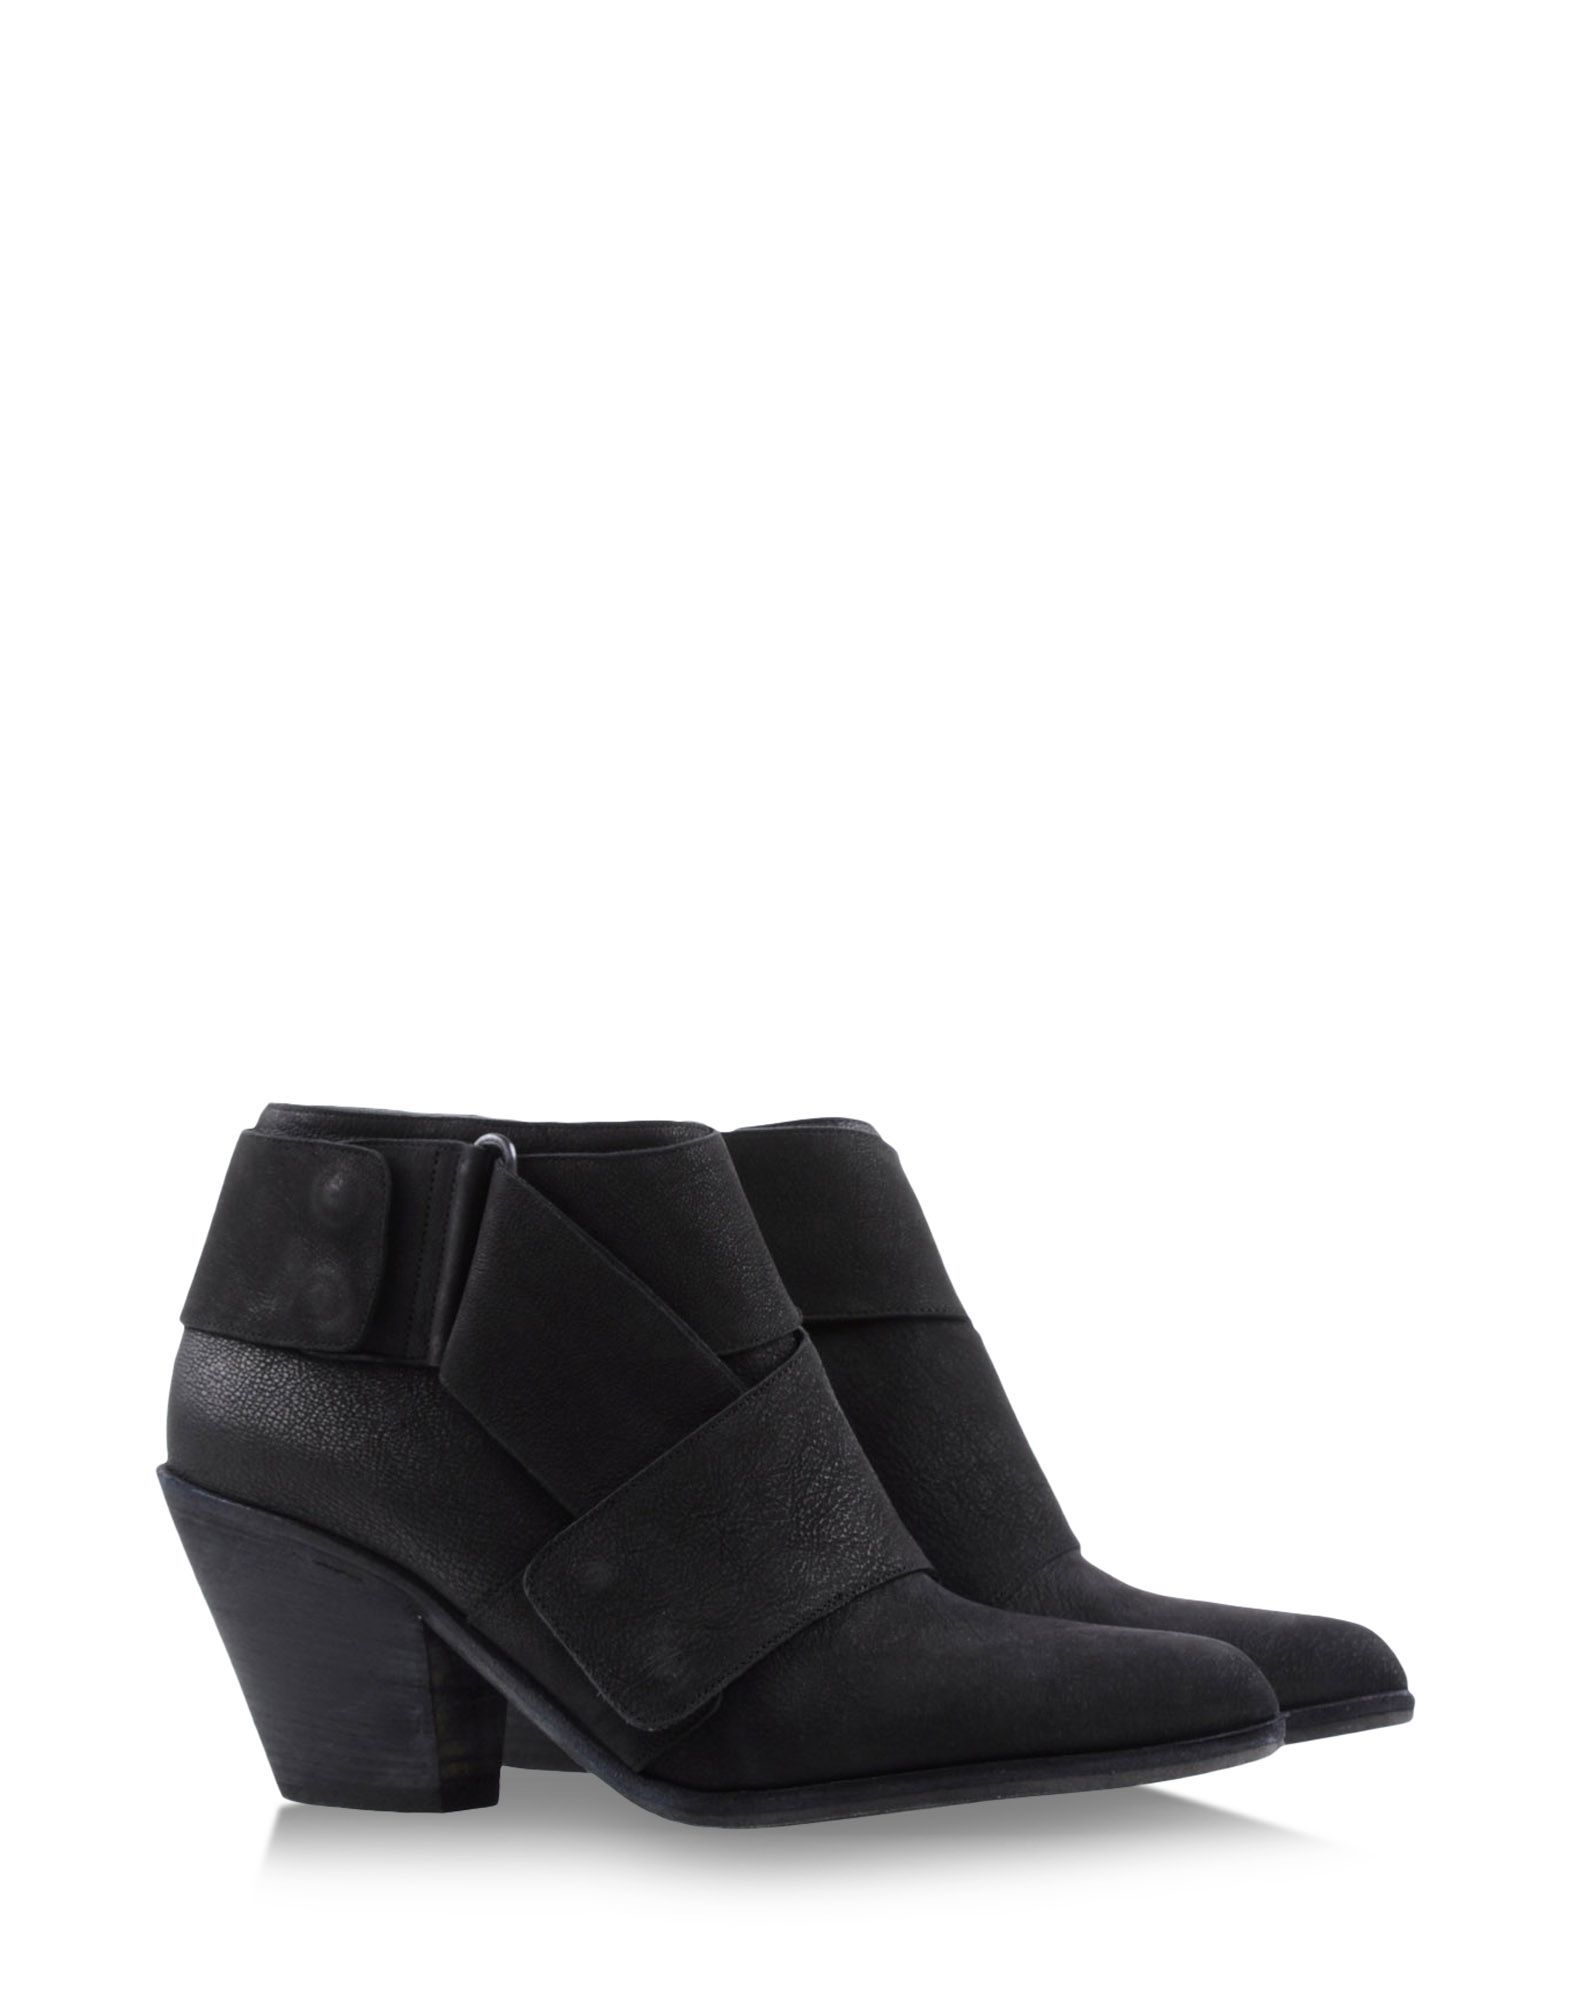 Shop online Women's Ldtuttle at shoescribe.com